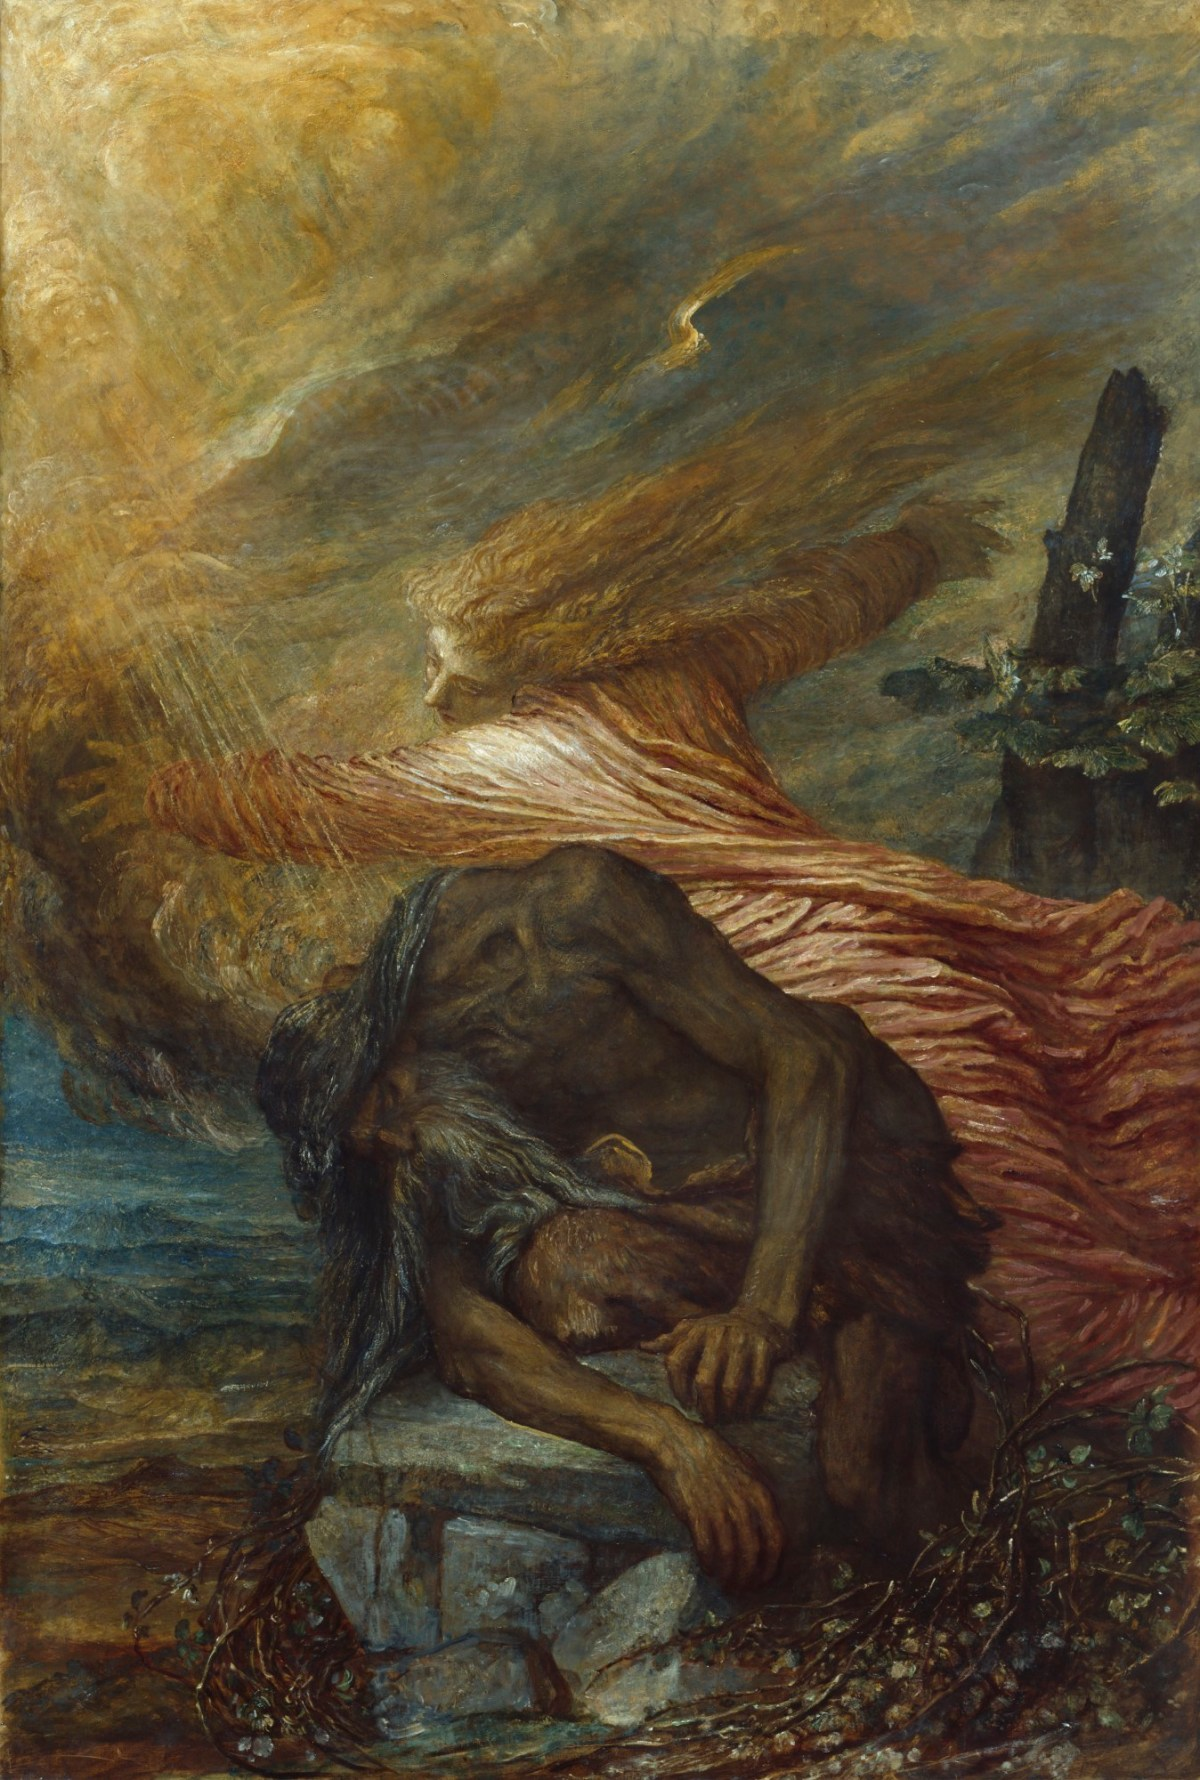 George Frederic Watts RA, The Death of Cain